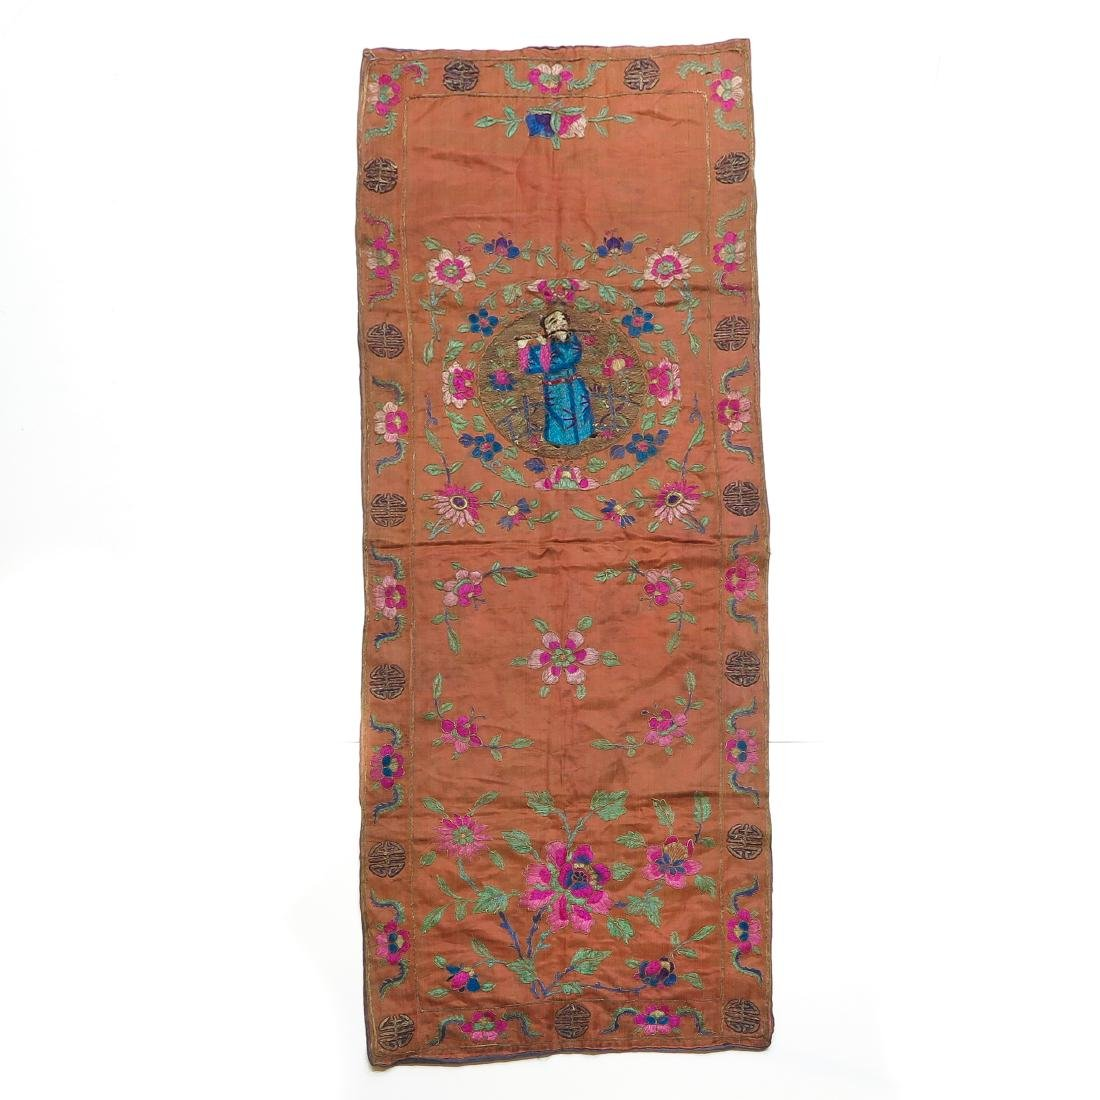 A Silk Embroidered Textile